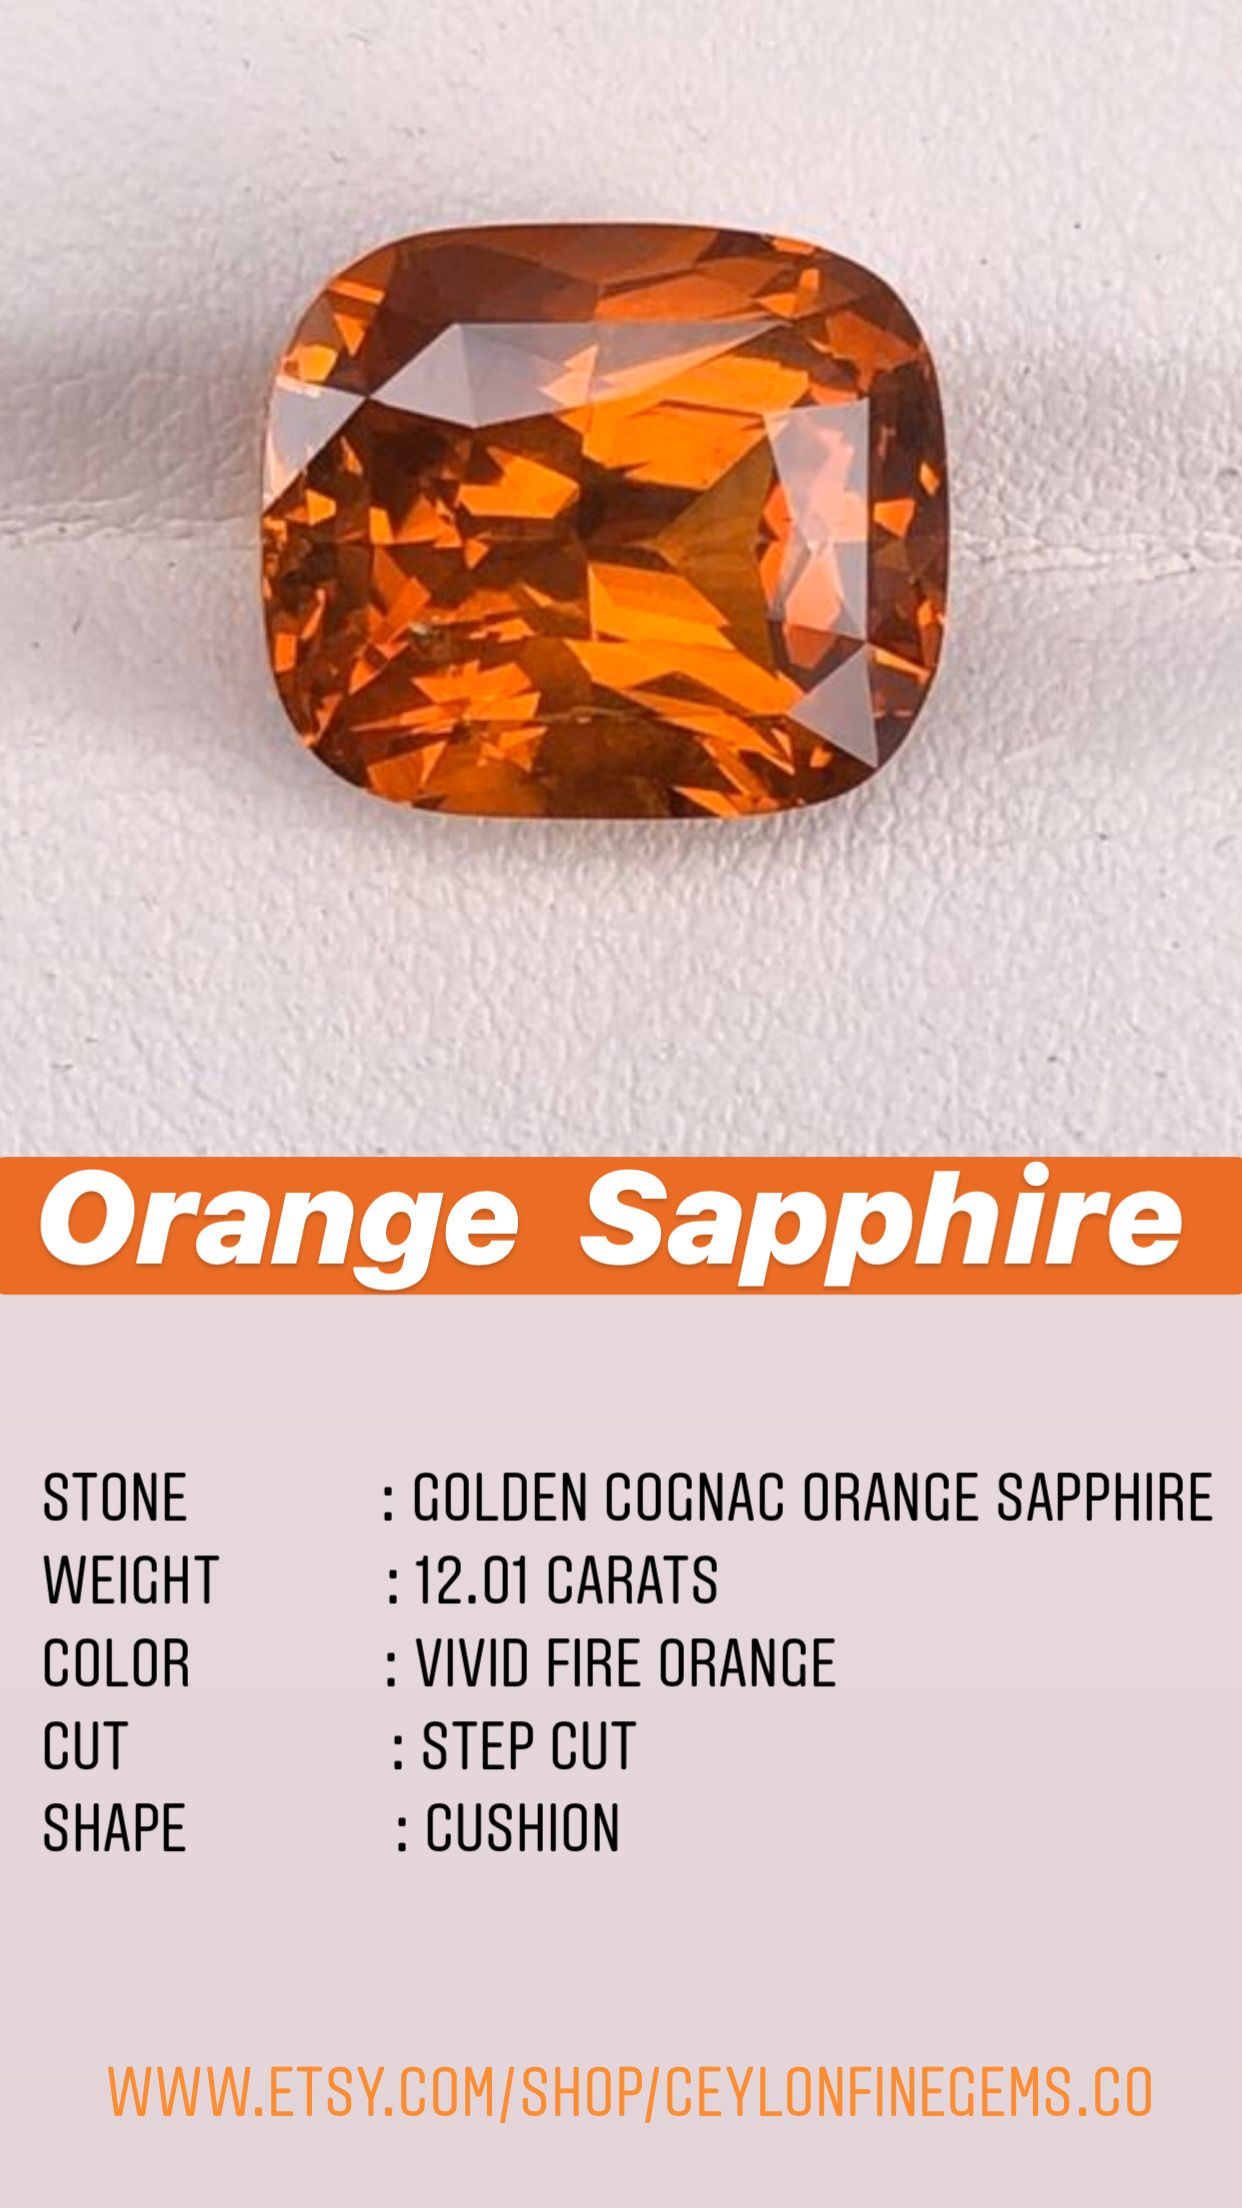 Mekong Whisky Sapphire 12 Carats Cushion Shape Orange Sapphire Cognac Sapphire Engagement Ring Gemstones For Jewelry Making In 2020 Orange Sapphire Gemstone Gifts Engagement Rings Sapphire